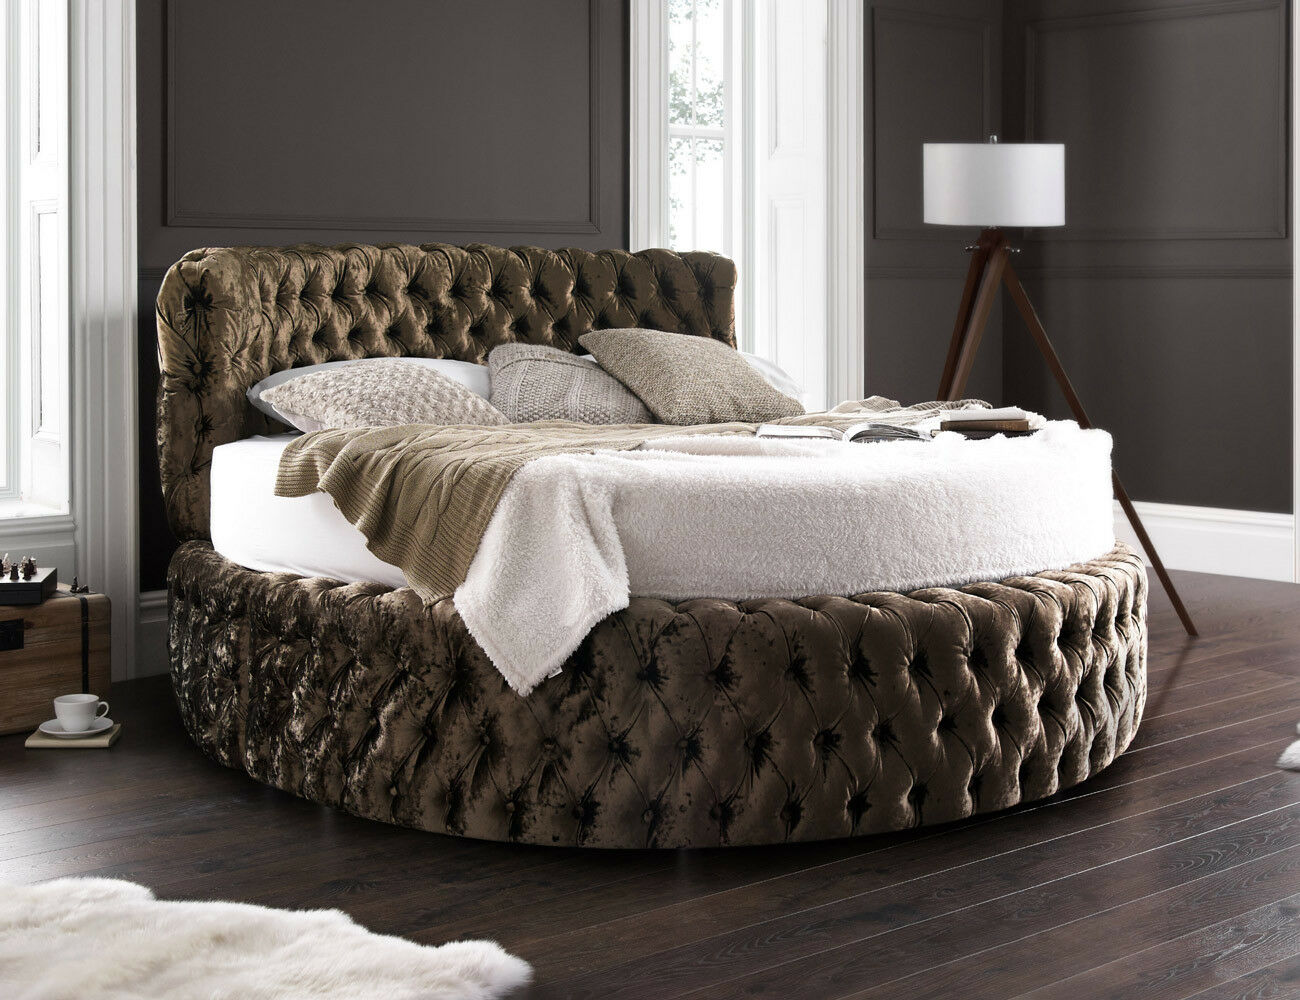 round sofa bed uk fabrics for sofas online glamour chesterfield 7ft with headboard 210cm